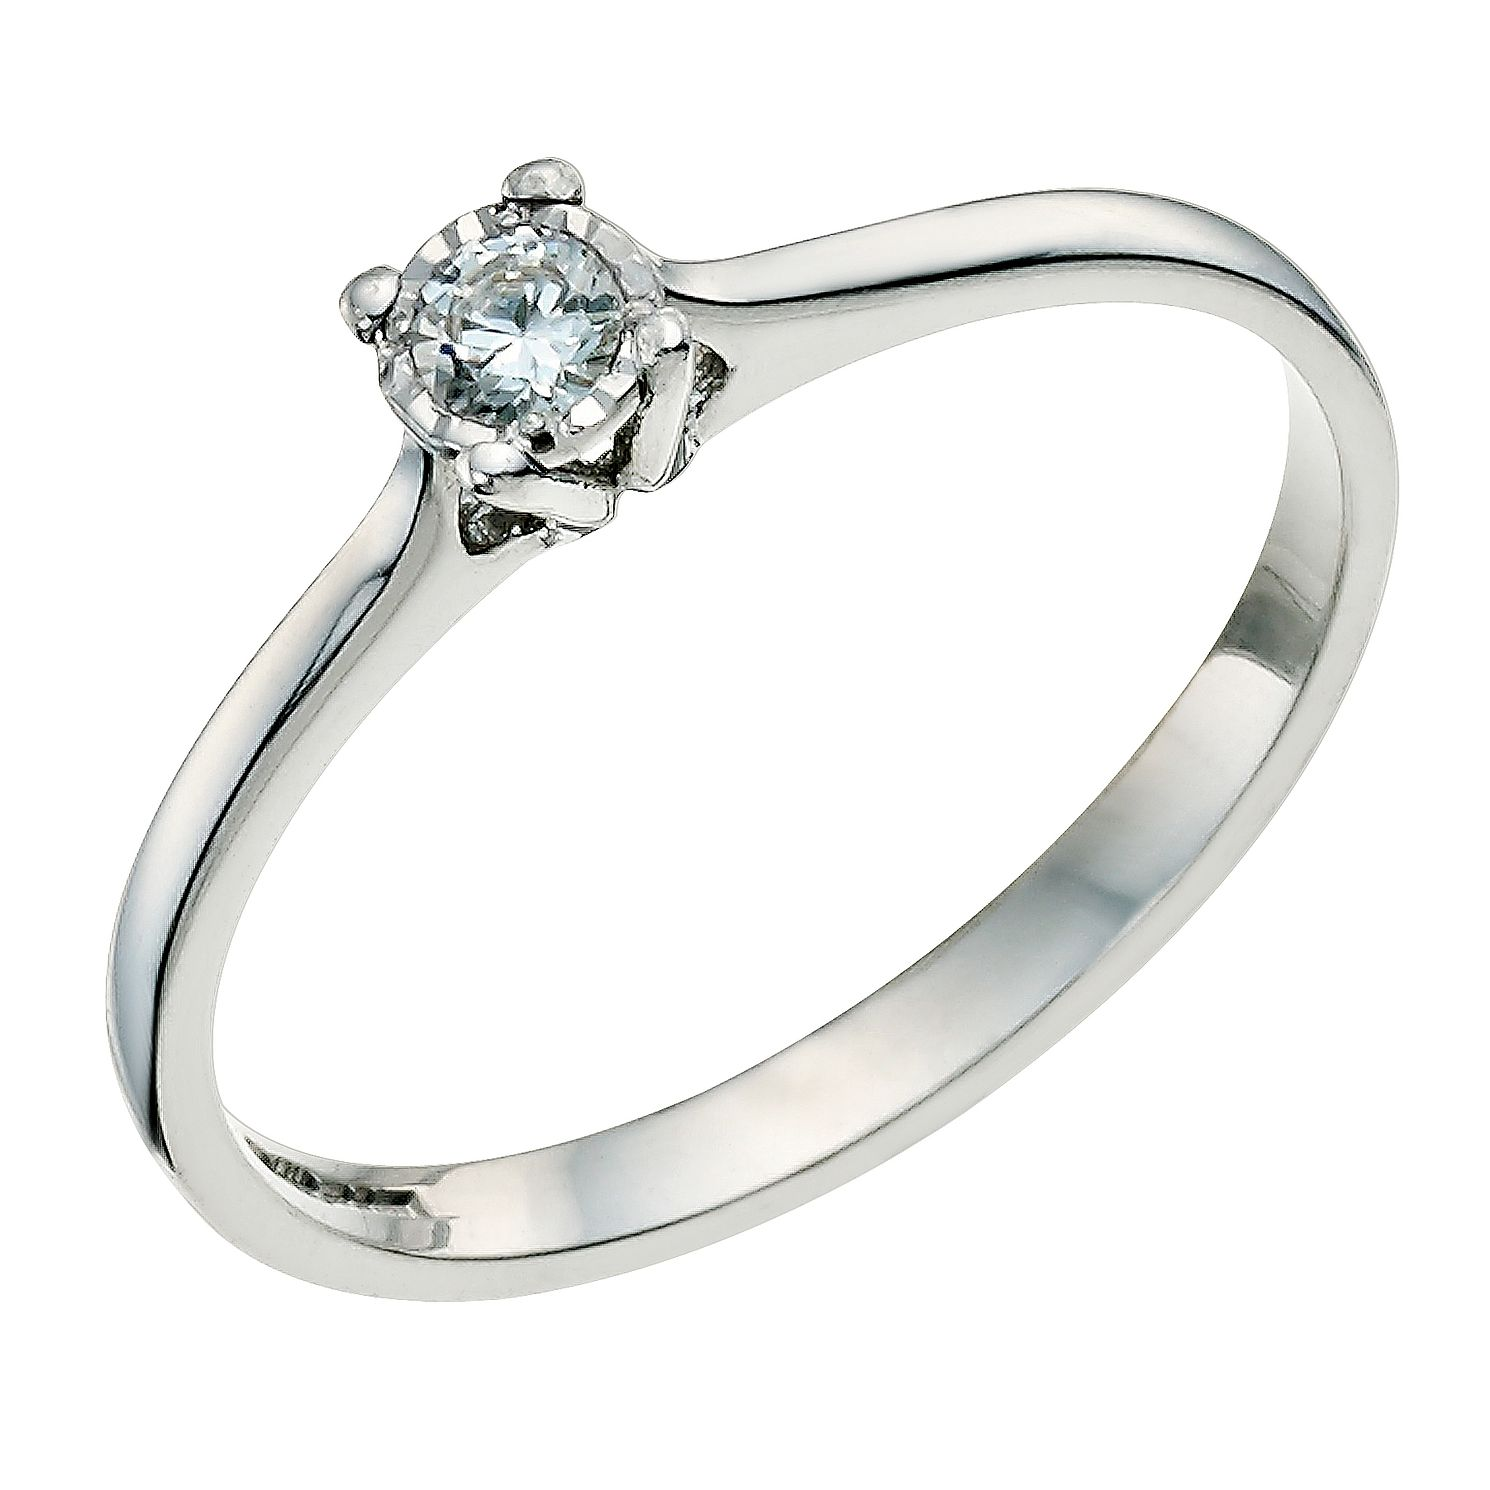 s simon passion solitaire rings g shop wedding diamond engagement zadok ring